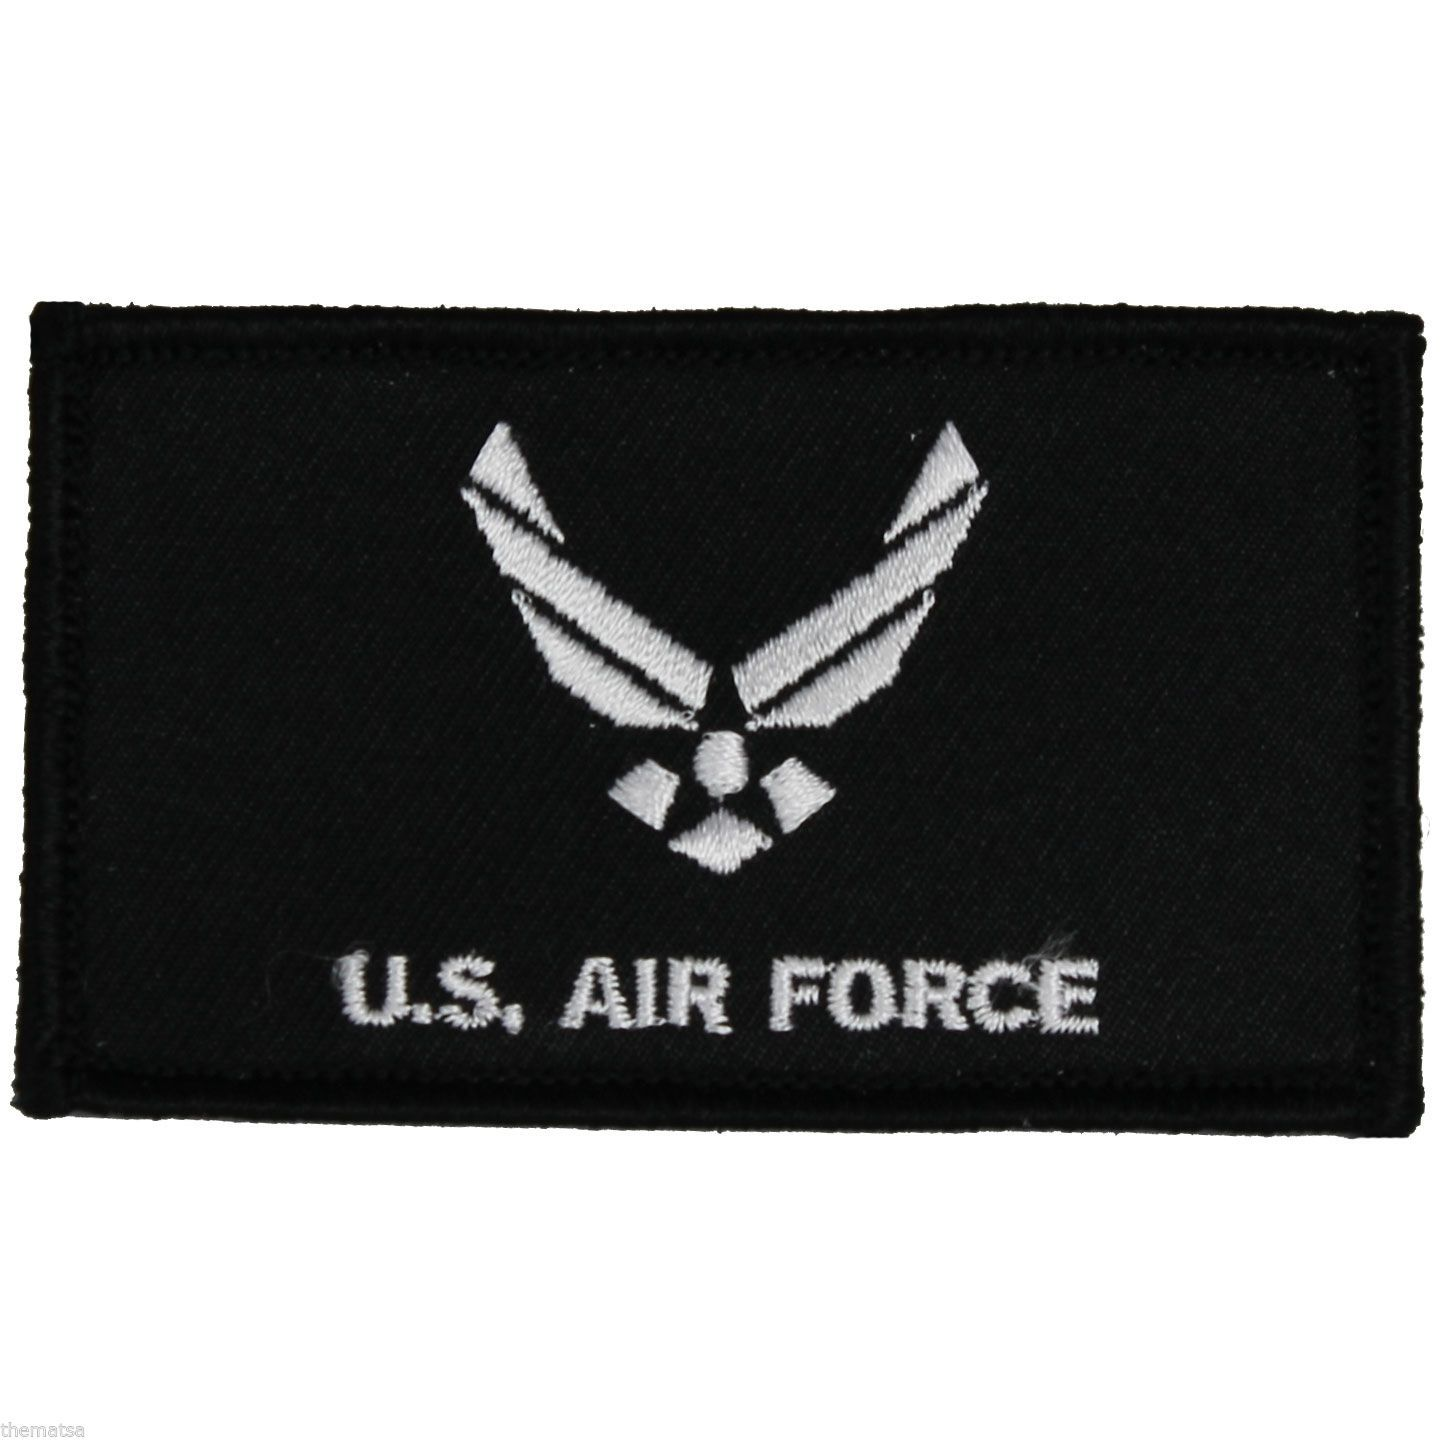 Primary image for AIR FORCE 2 X 3  EMBROIDERED MILITARY LOGO  PATCH WITH HOOK LOOP